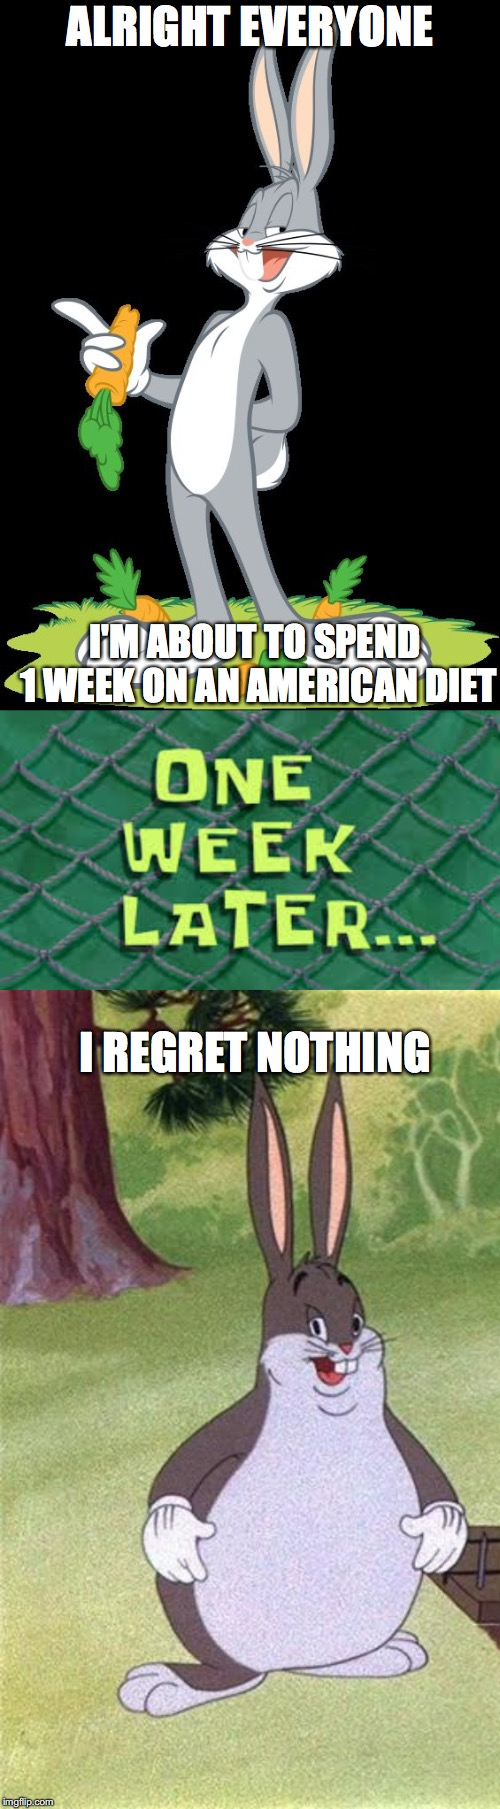 ALRIGHT EVERYONE; I'M ABOUT TO SPEND 1 WEEK ON AN AMERICAN DIET; I REGRET NOTHING | image tagged in bugs bunny,big chungus | made w/ Imgflip meme maker